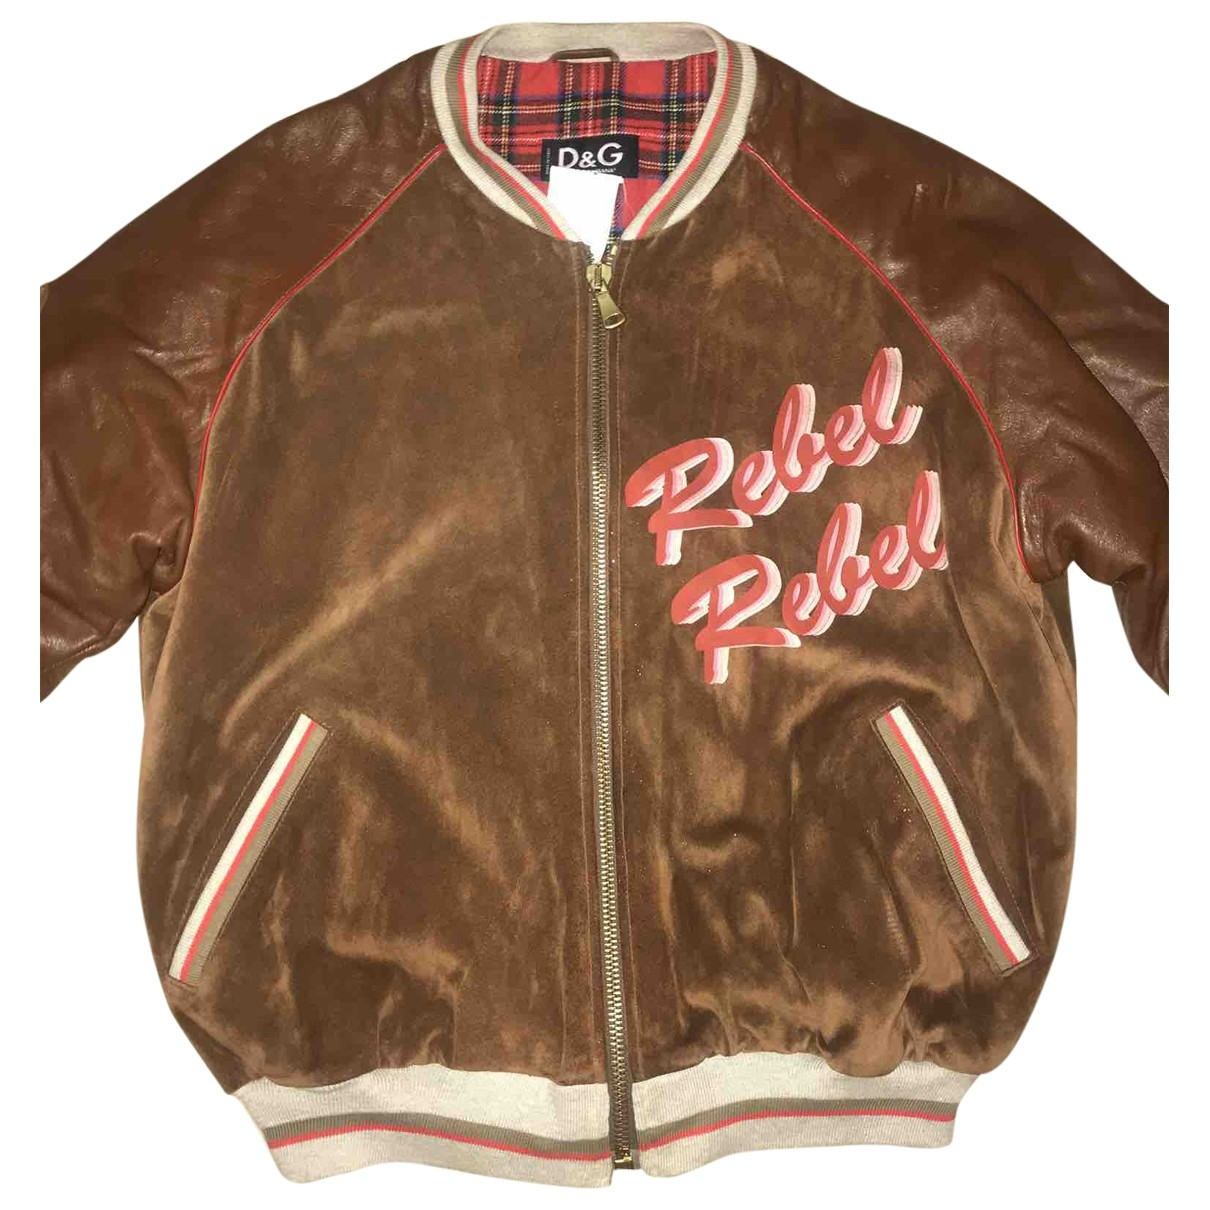 D&g \N Brown Leather jacket  for Men M International